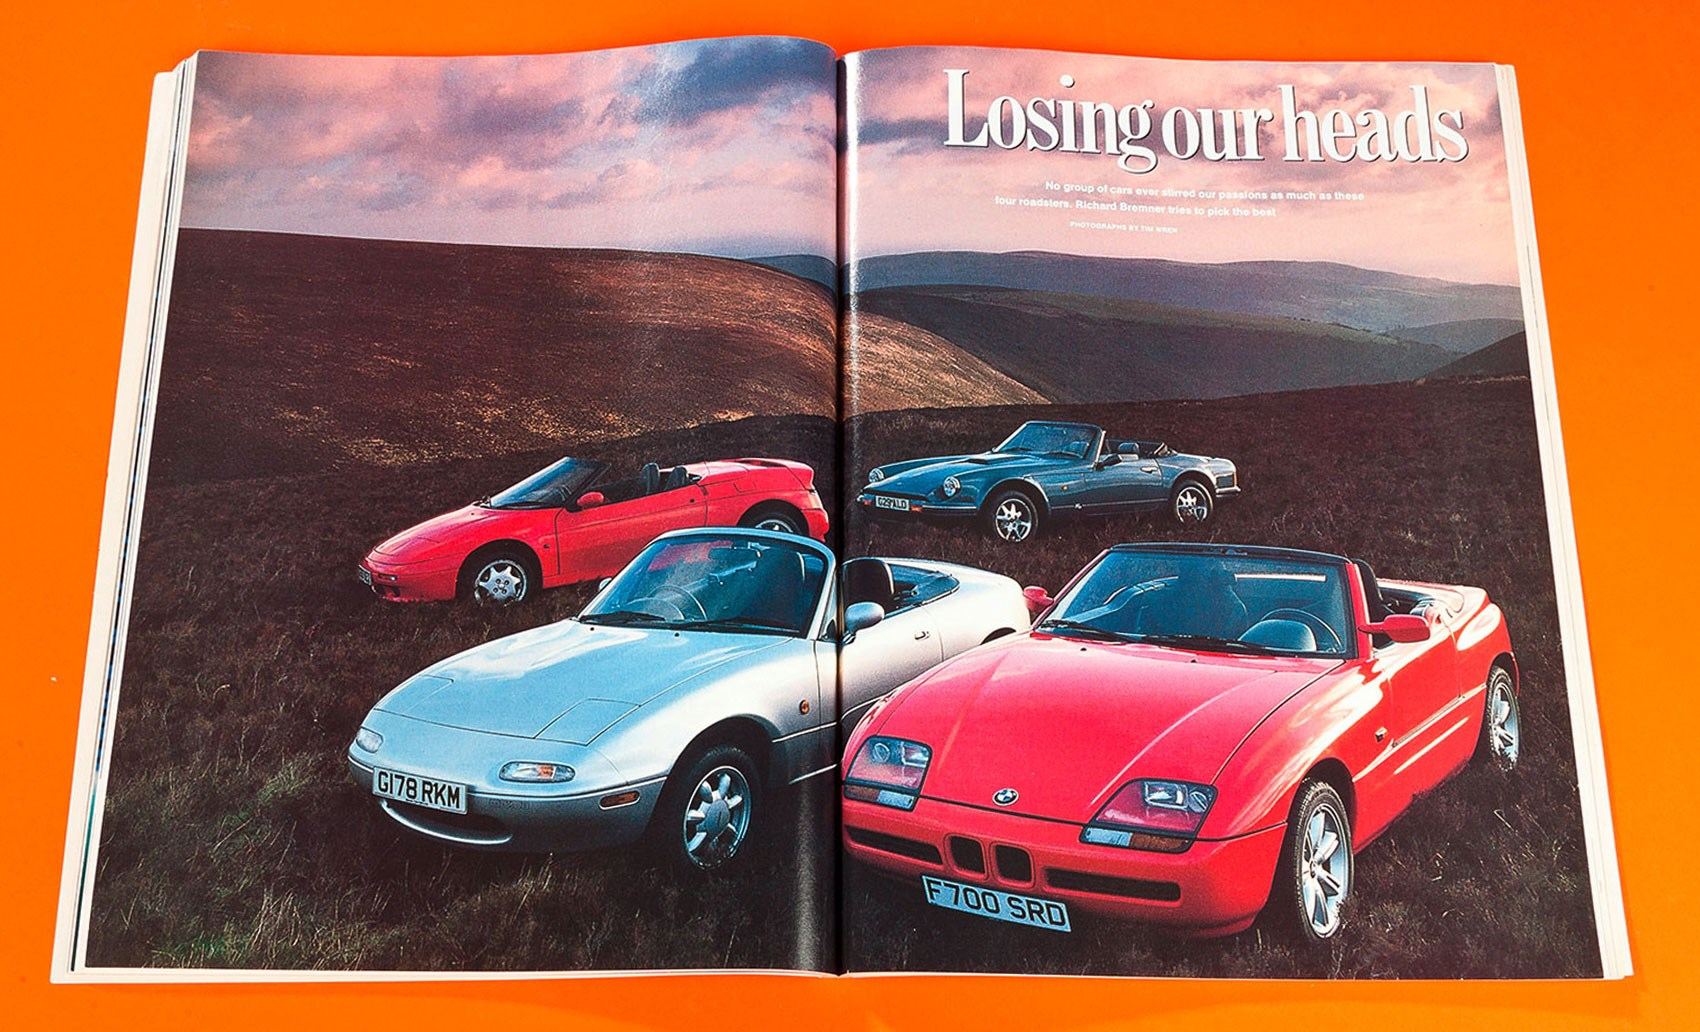 losing our heads bmw z1 vs lotus elan vs mazda mx 5 vs tvr s car archive 1990 by car magazine. Black Bedroom Furniture Sets. Home Design Ideas